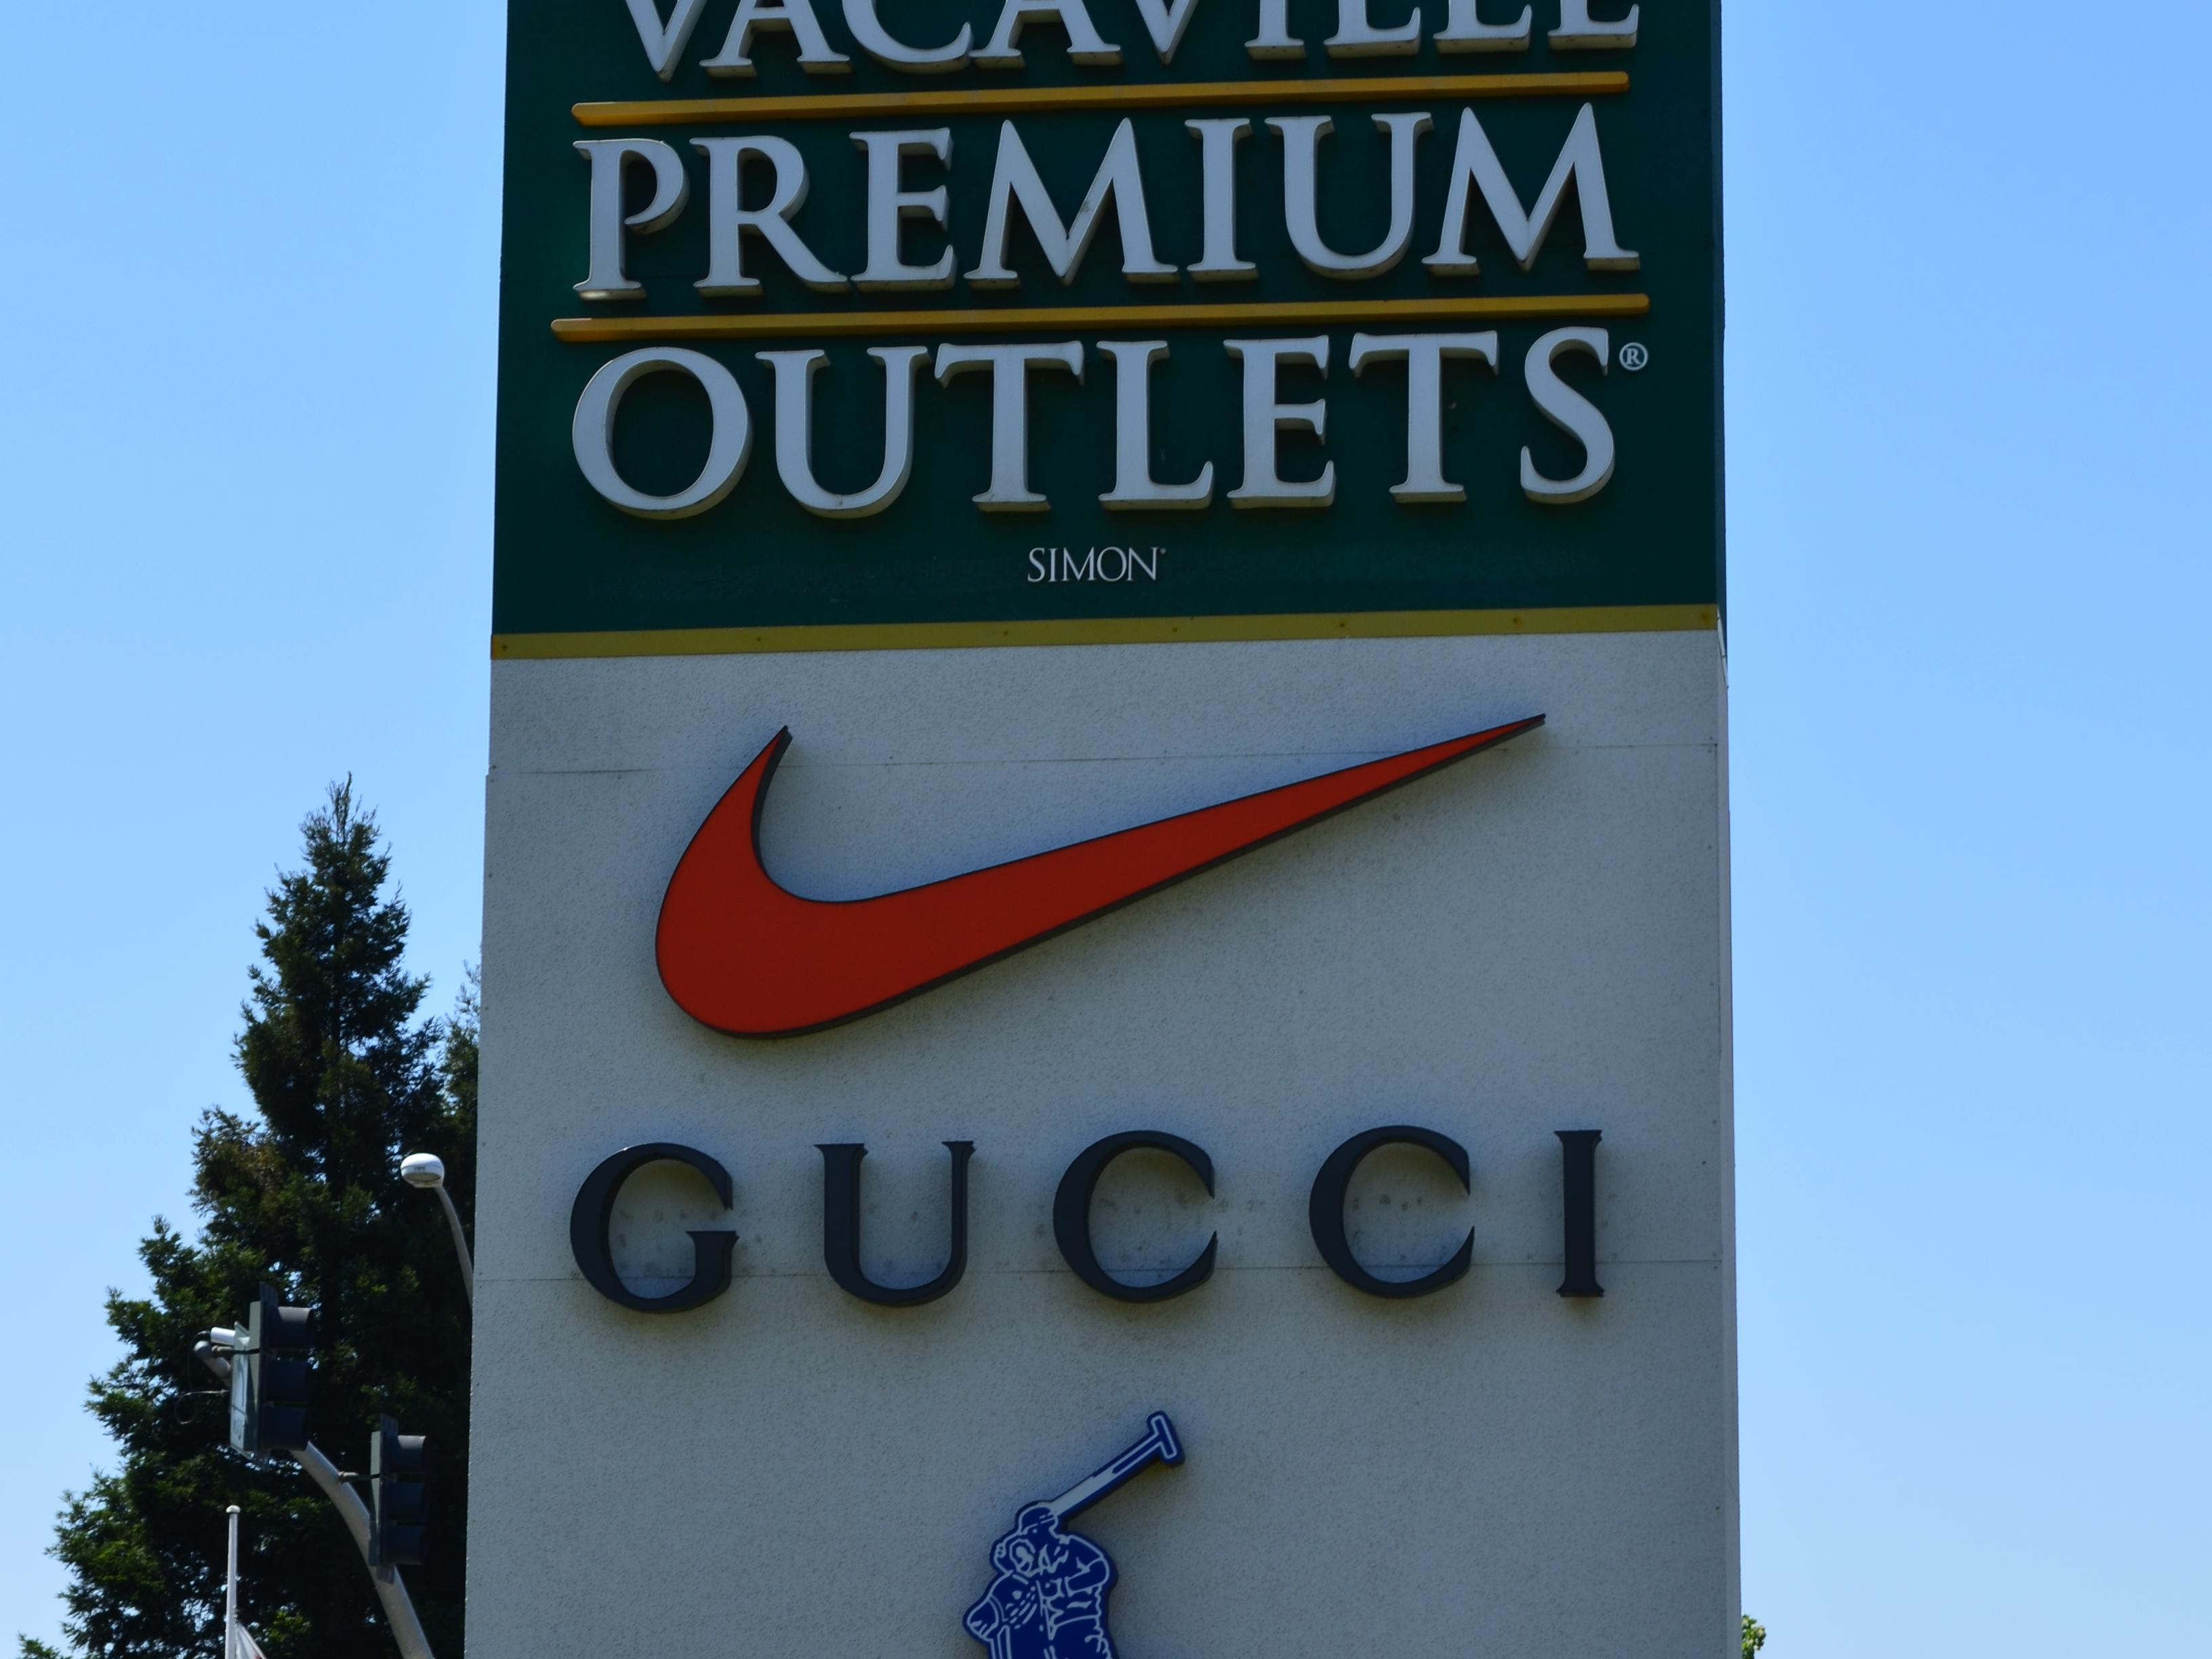 ec61001b733 1-Day Vacaville Premium Outlet Shopping and Napa Wine Tour from San ...